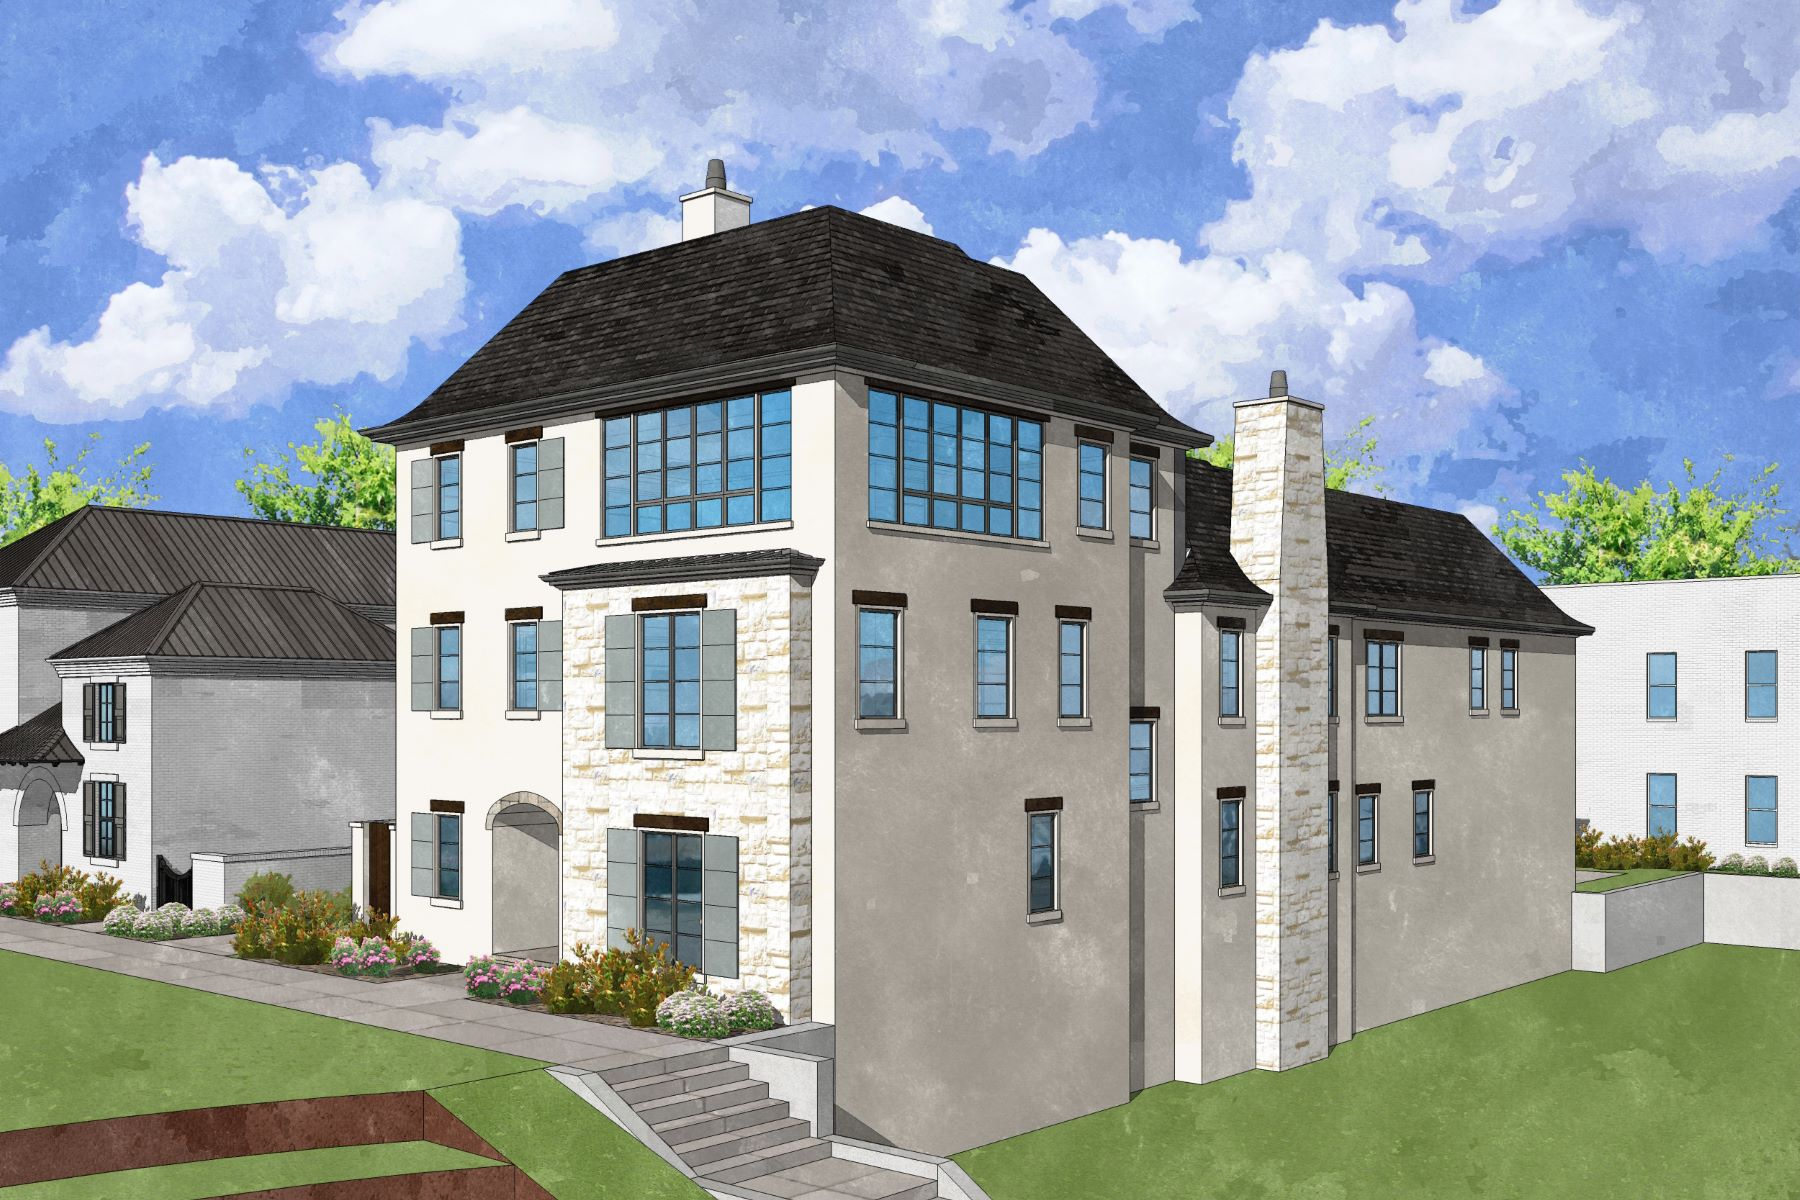 Additional photo for property listing at New Construction Townhome 217 N Esplanade Alpharetta, Джорджия 30009 Соединенные Штаты